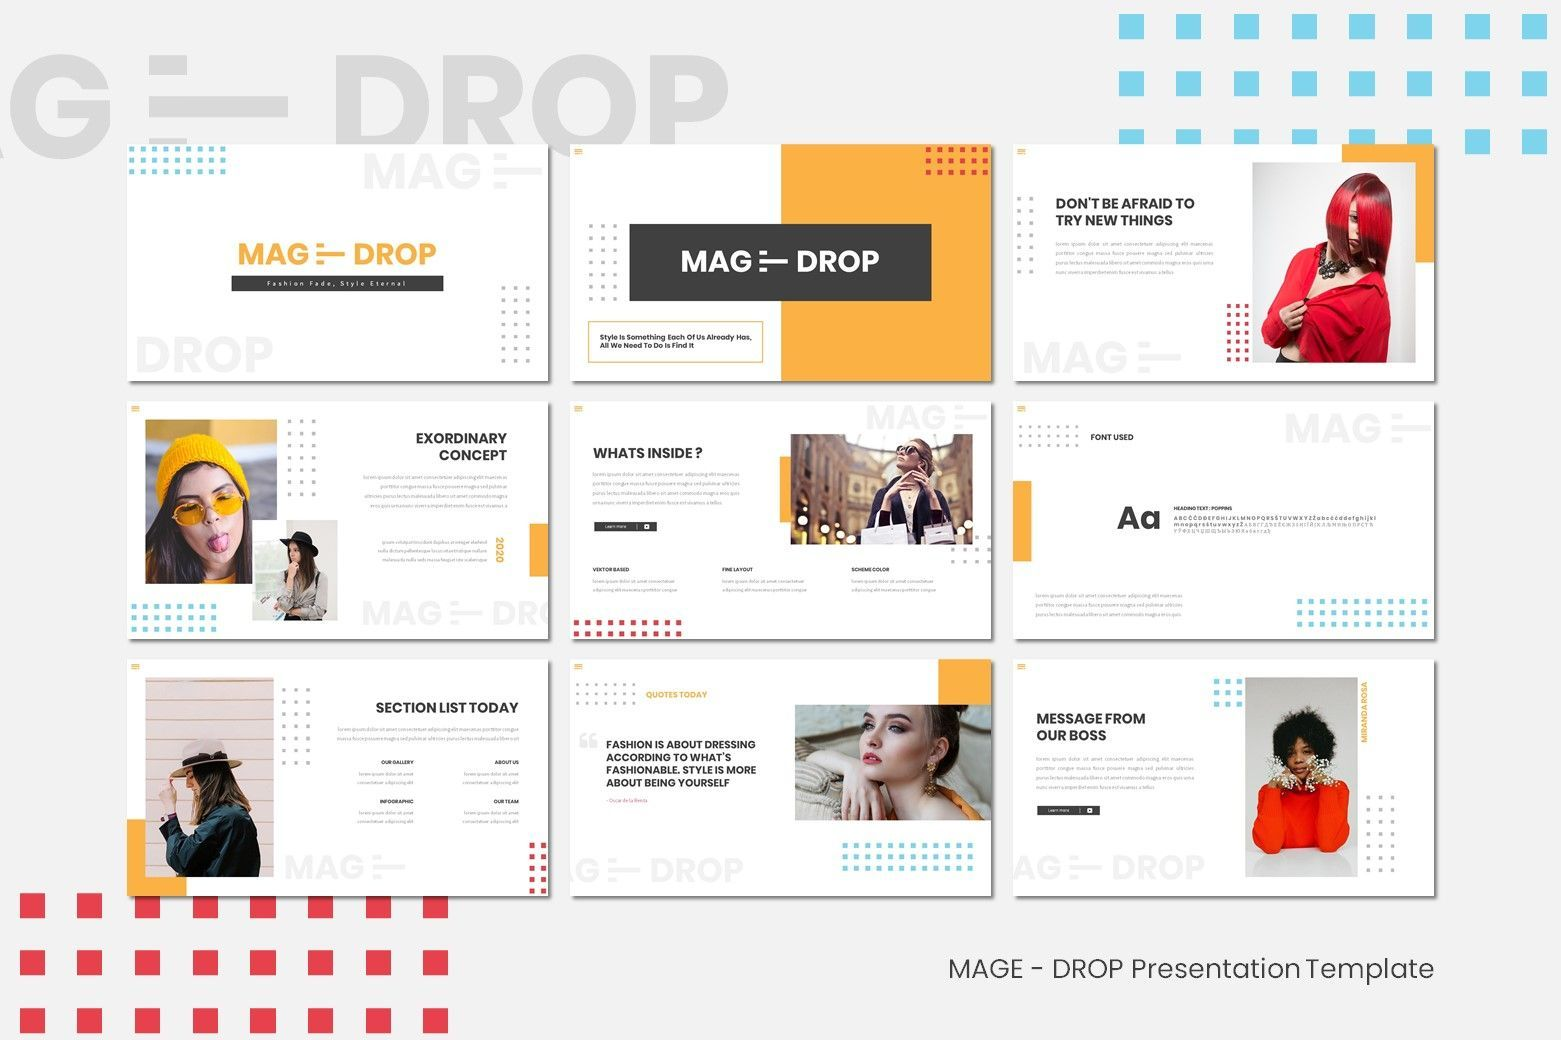 Mage Drop - Google Slides Template, Slide 2, 07997, Presentation Templates — PoweredTemplate.com